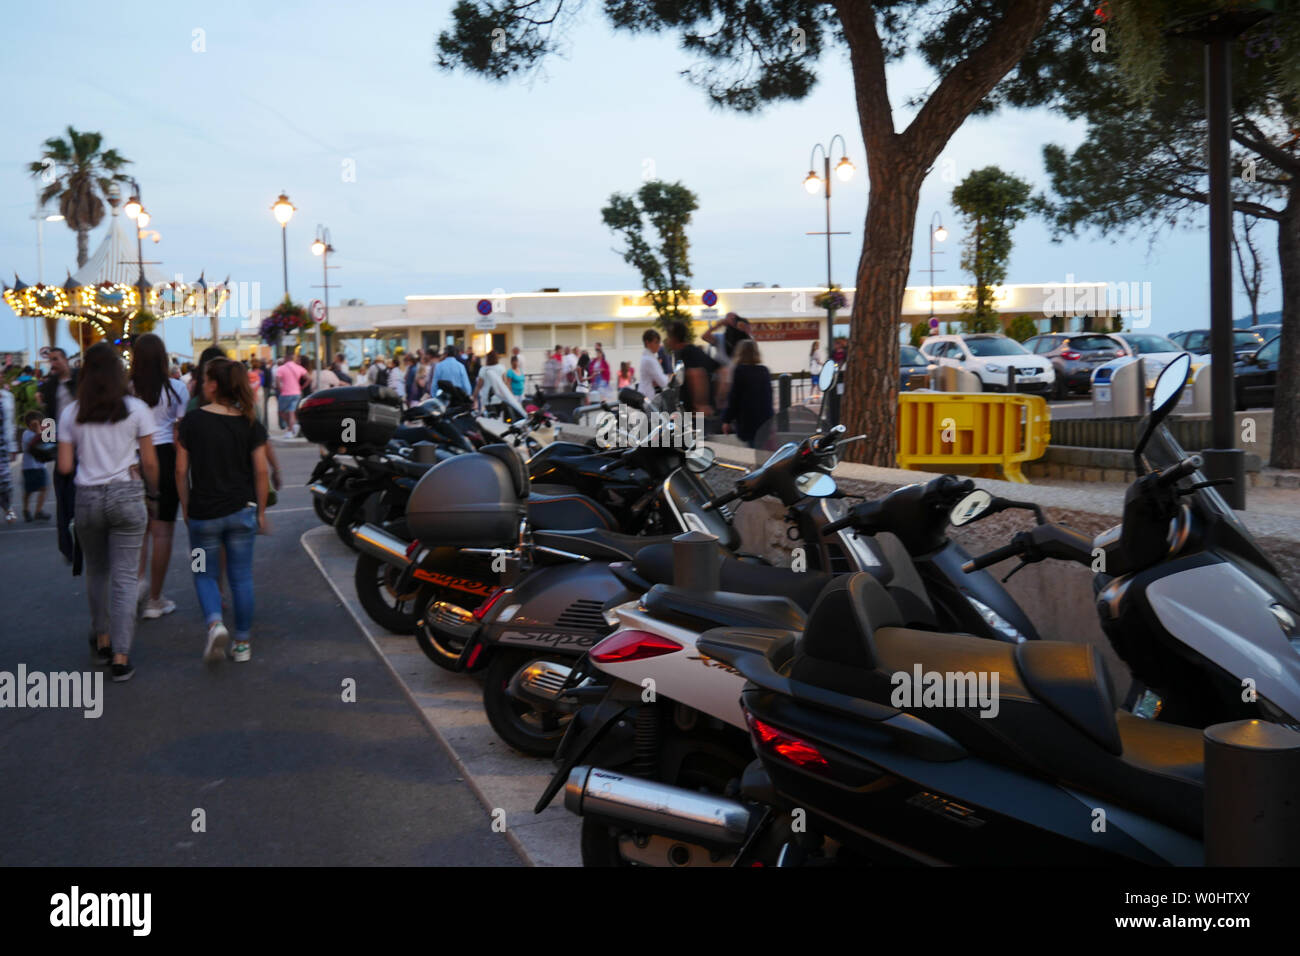 People wander in the street at twilight, Cassis, Bouches-du-Rhone, France Stock Photo